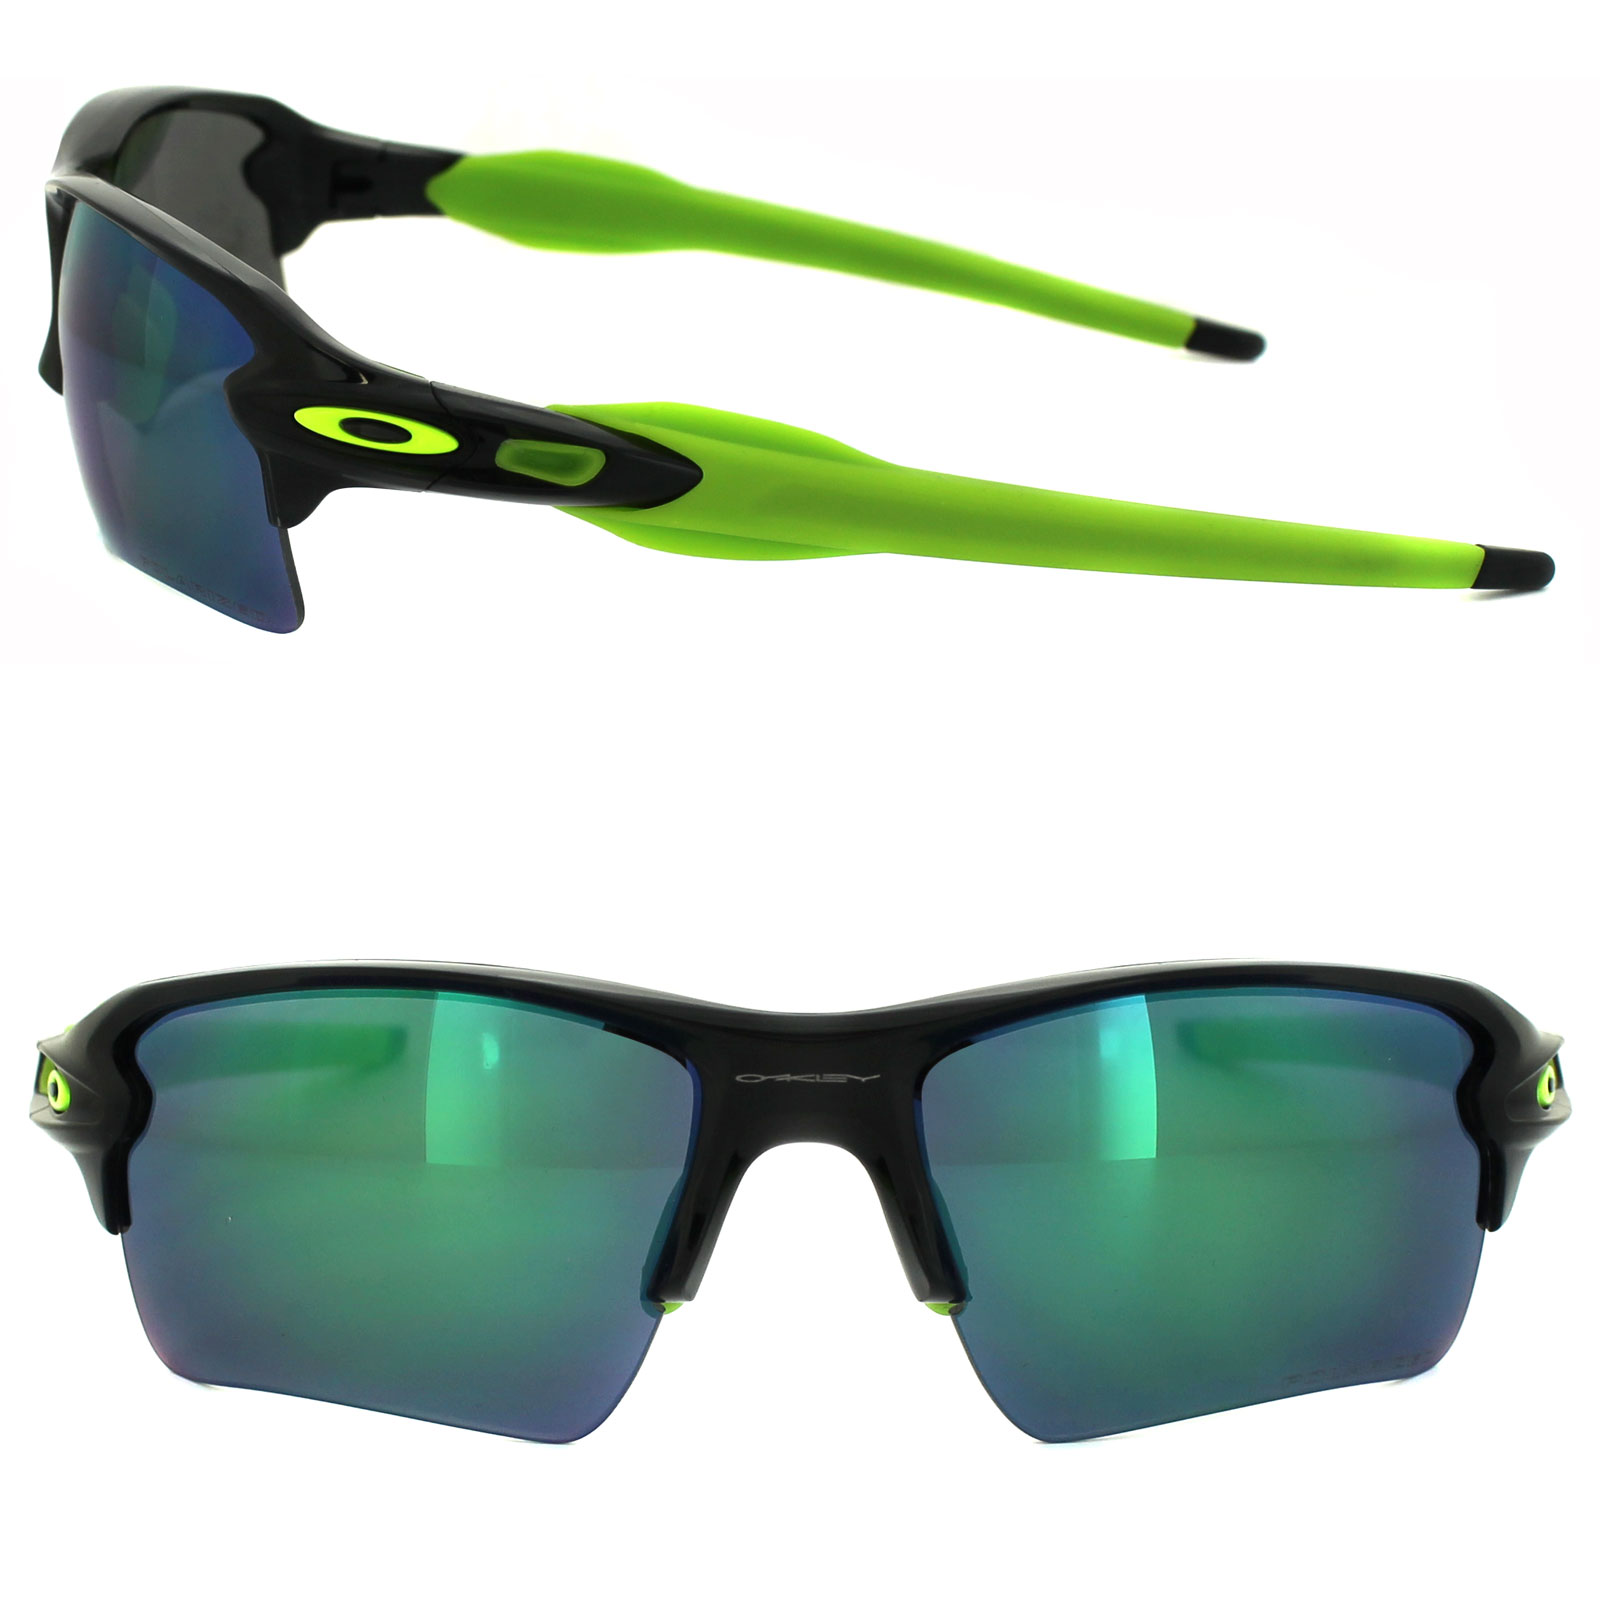 068a71cbbd Sentinel Oakley Sunglasses Flak 2.0 XL OO9188-09 Black Ink Jade Iridium  Polarized